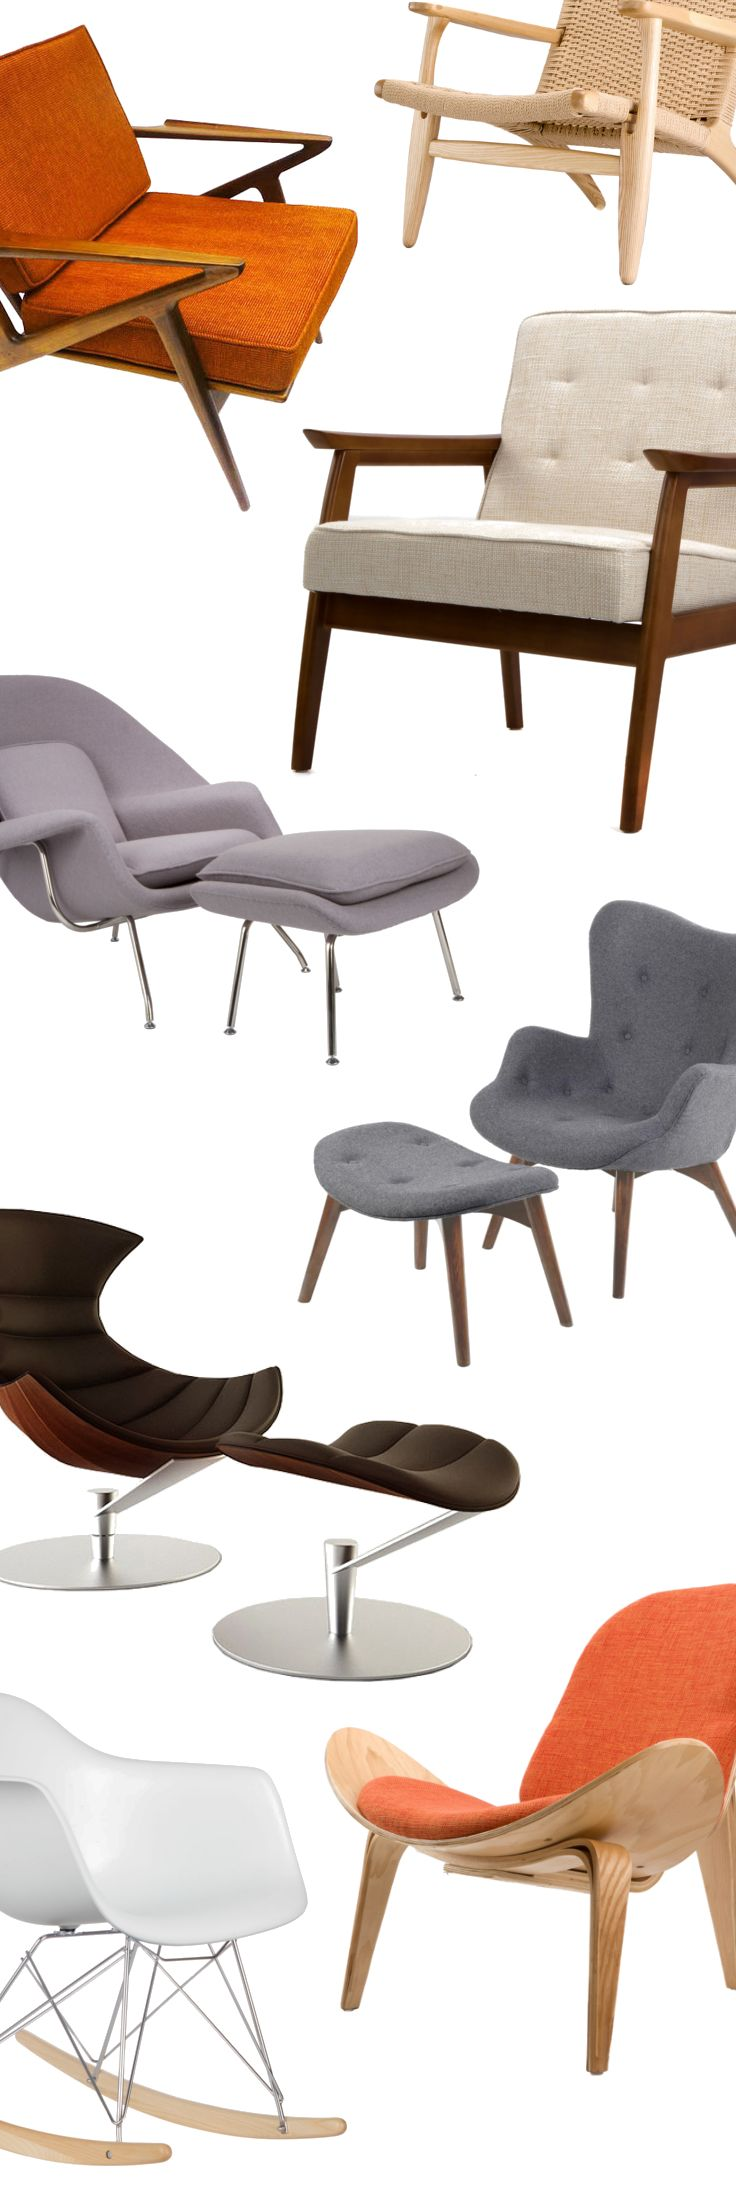 Accent Chairs & Lounge Chairs | Shop Now at dotandbo.com